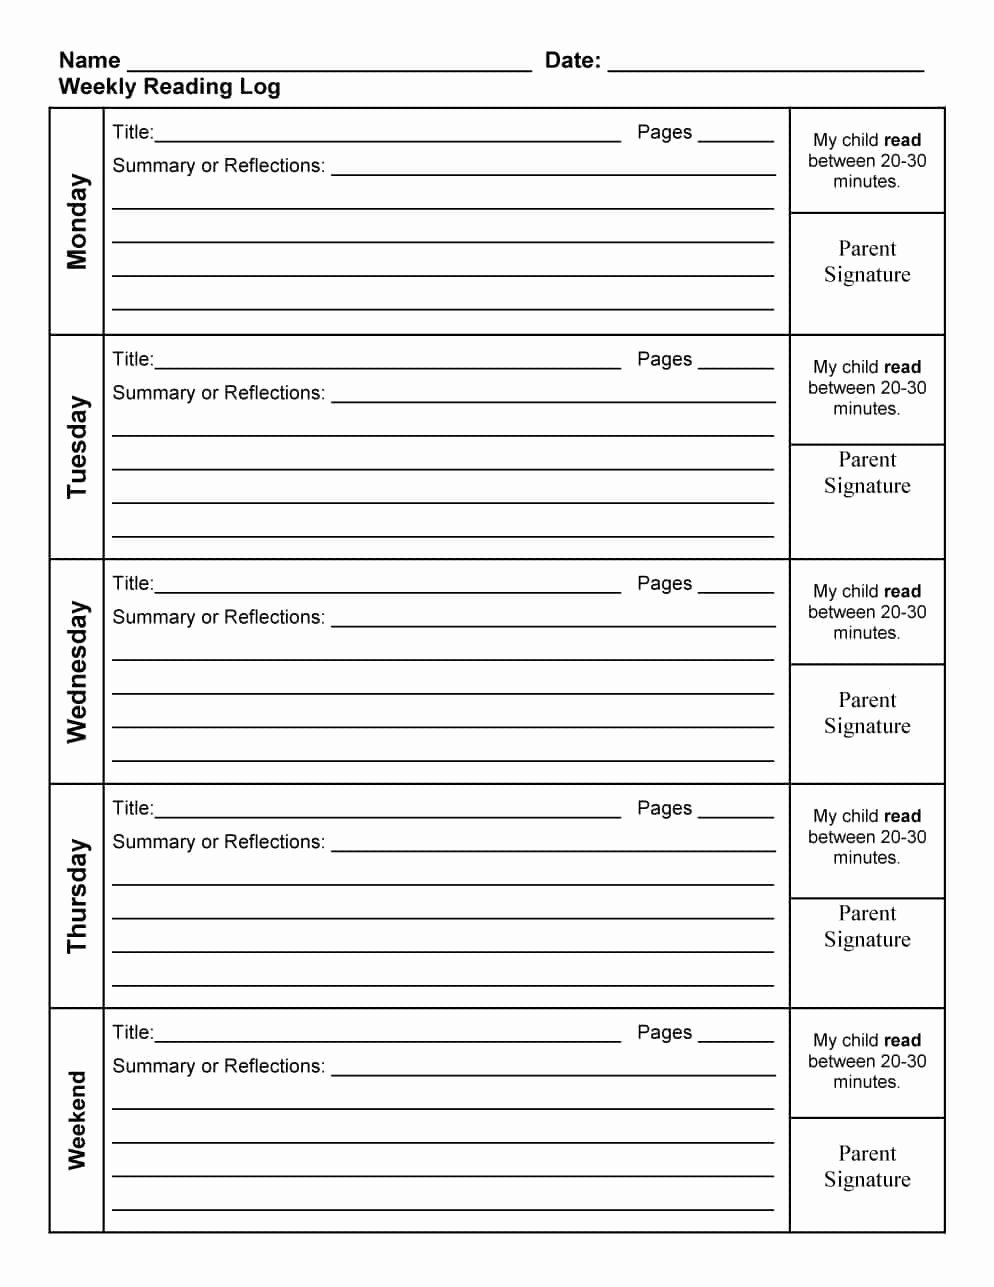 Weekly Reading Log Template New 47 Printable Reading Log Templates for Kids Middle School